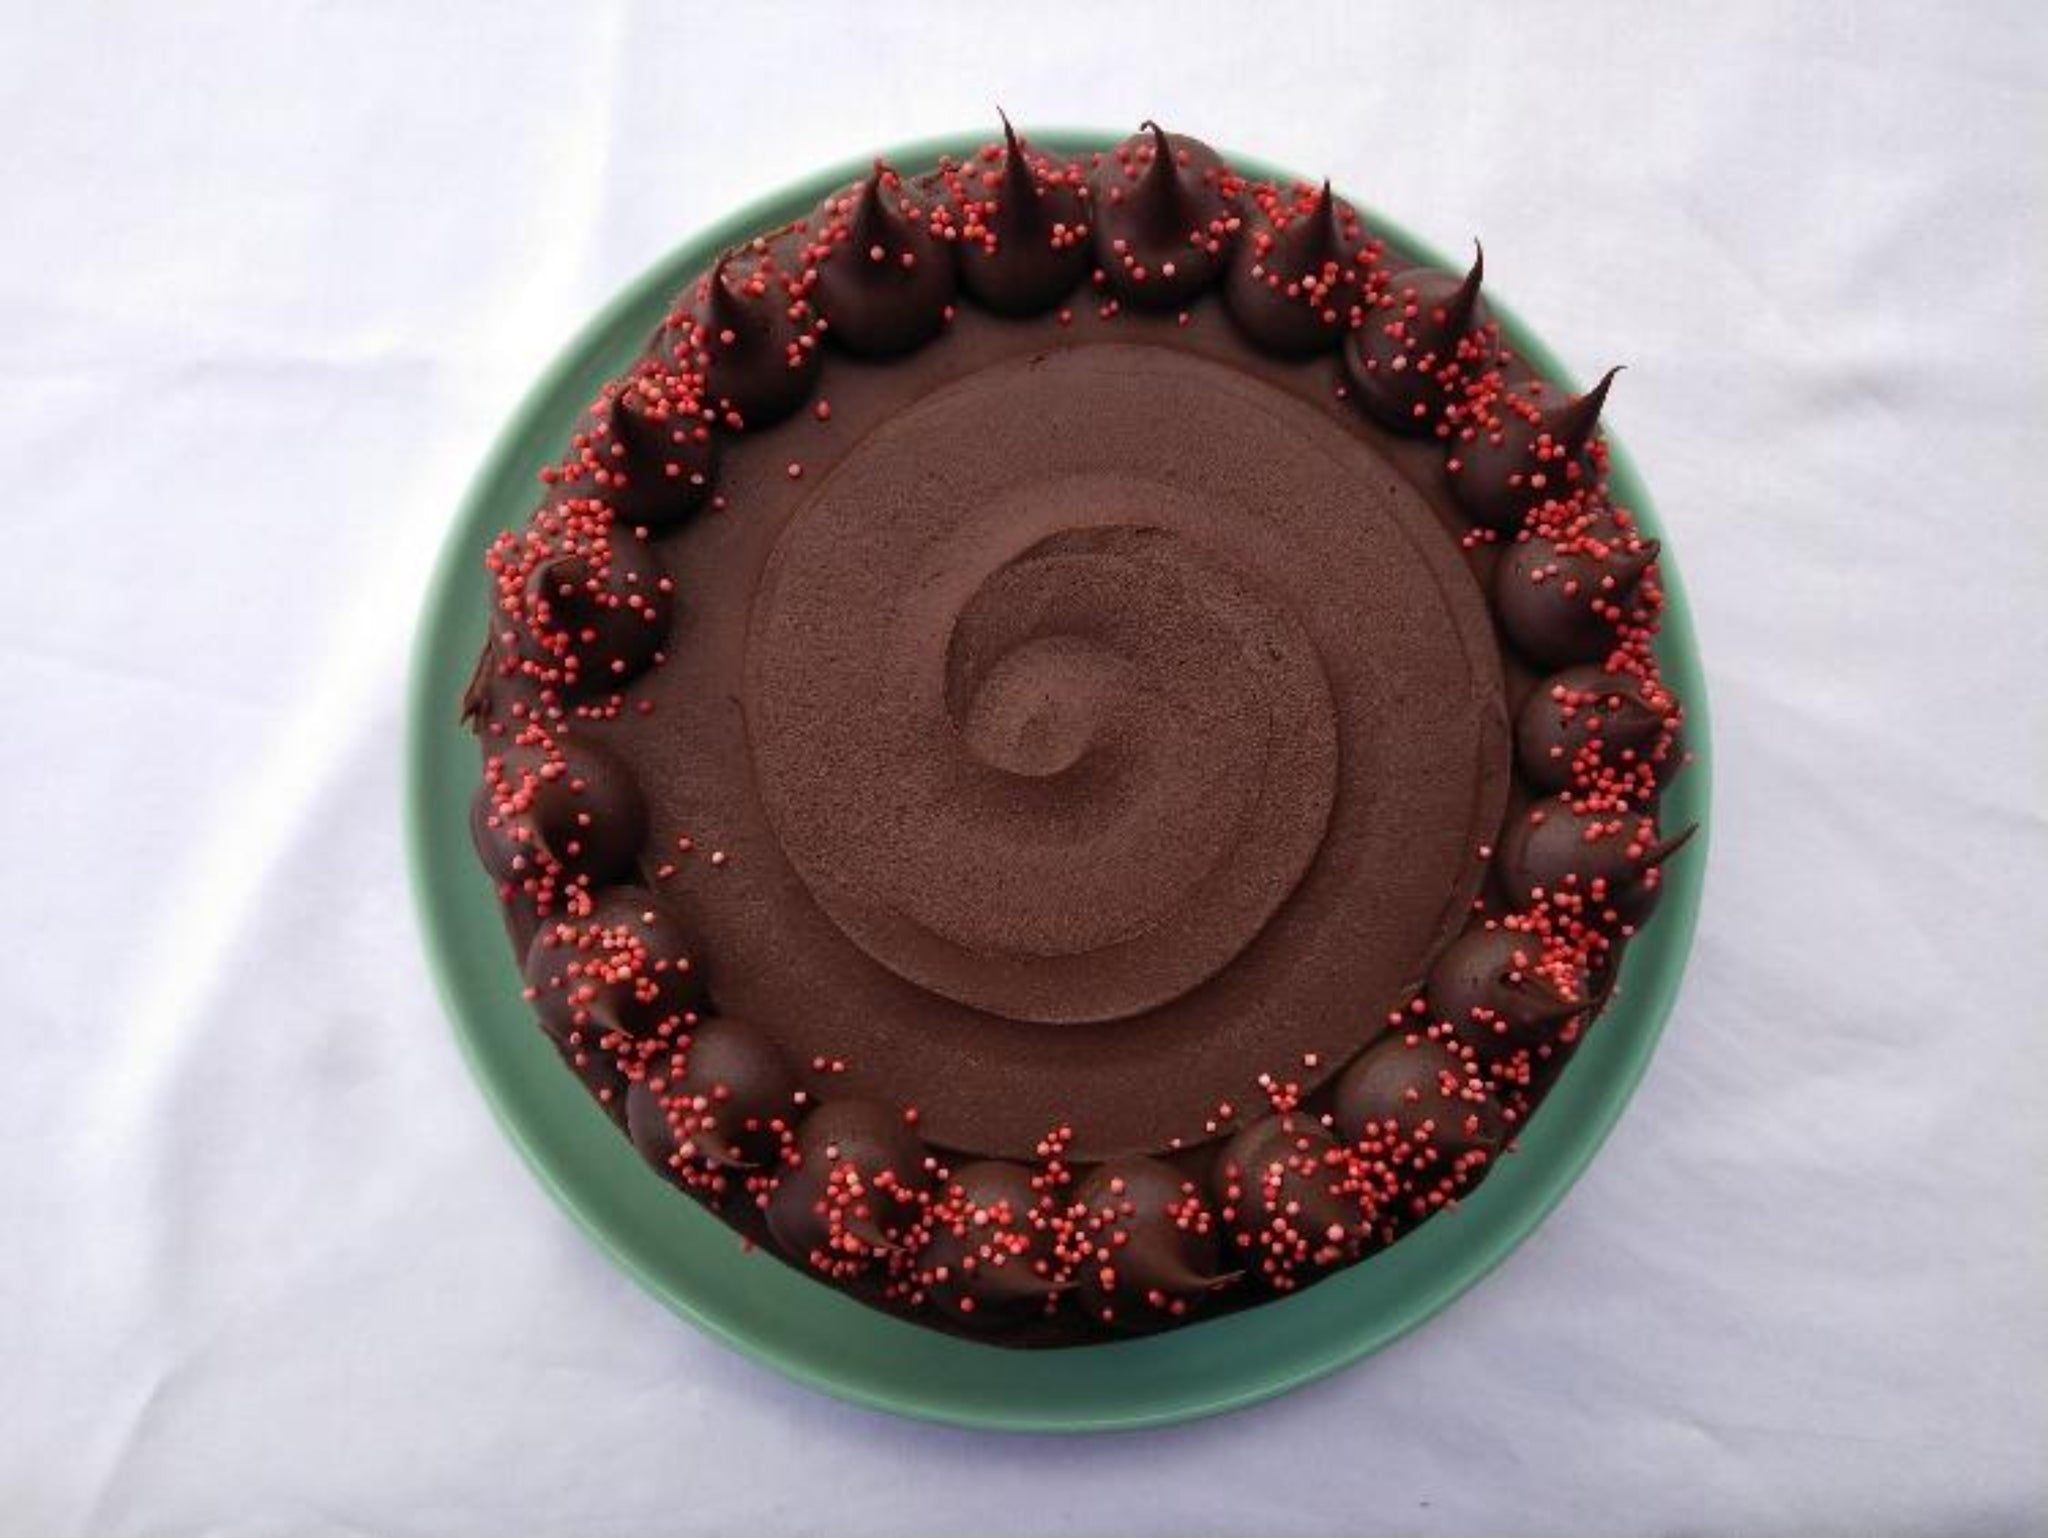 Signature Chocolate Chocolate Cake (edible image available)